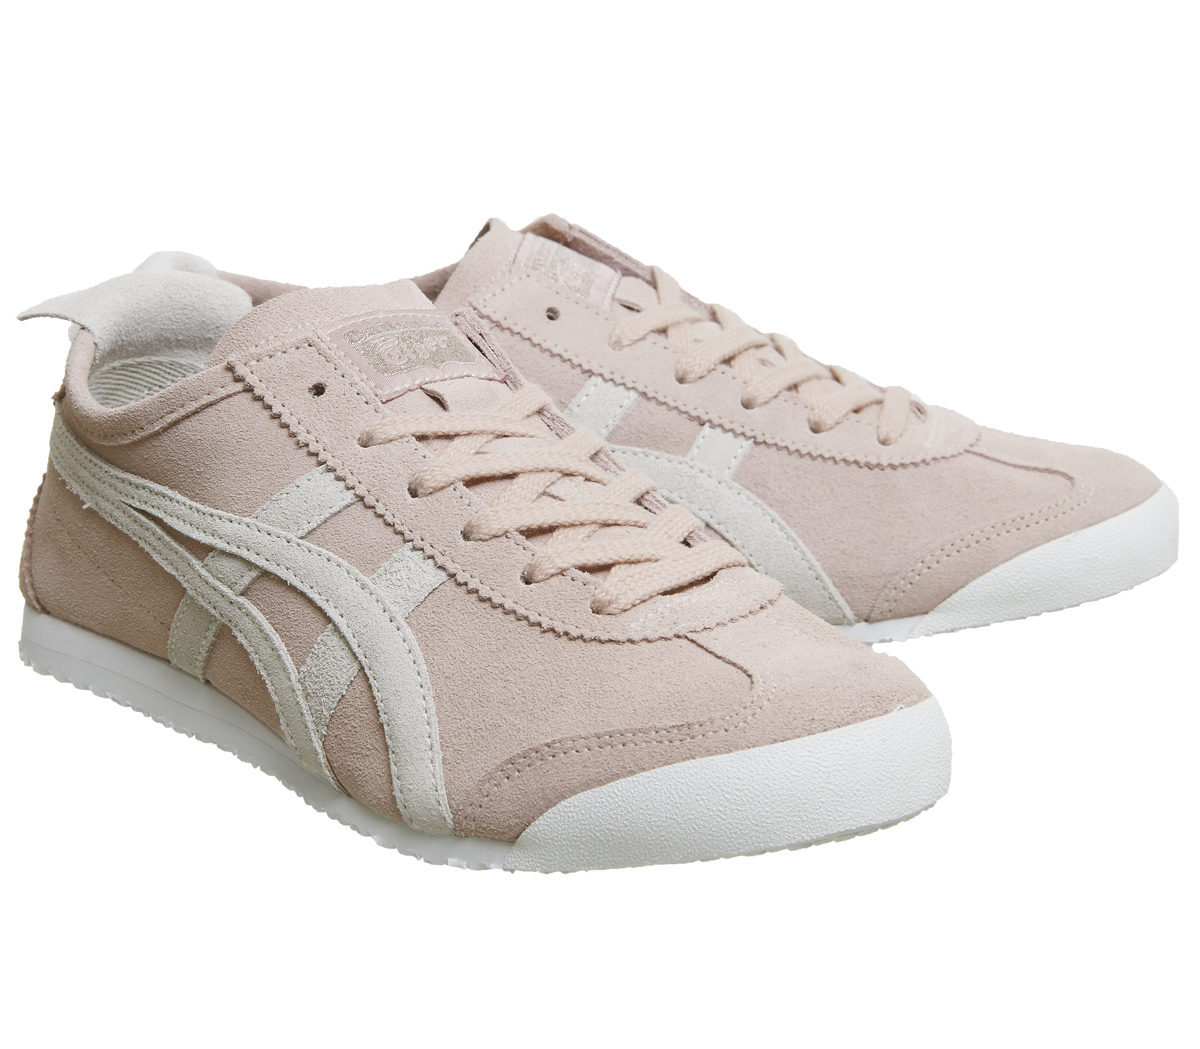 75d3af08ba Womens Onitsuka Tiger Mexico 66 Trainers Pink Grey Suede Trainers ...